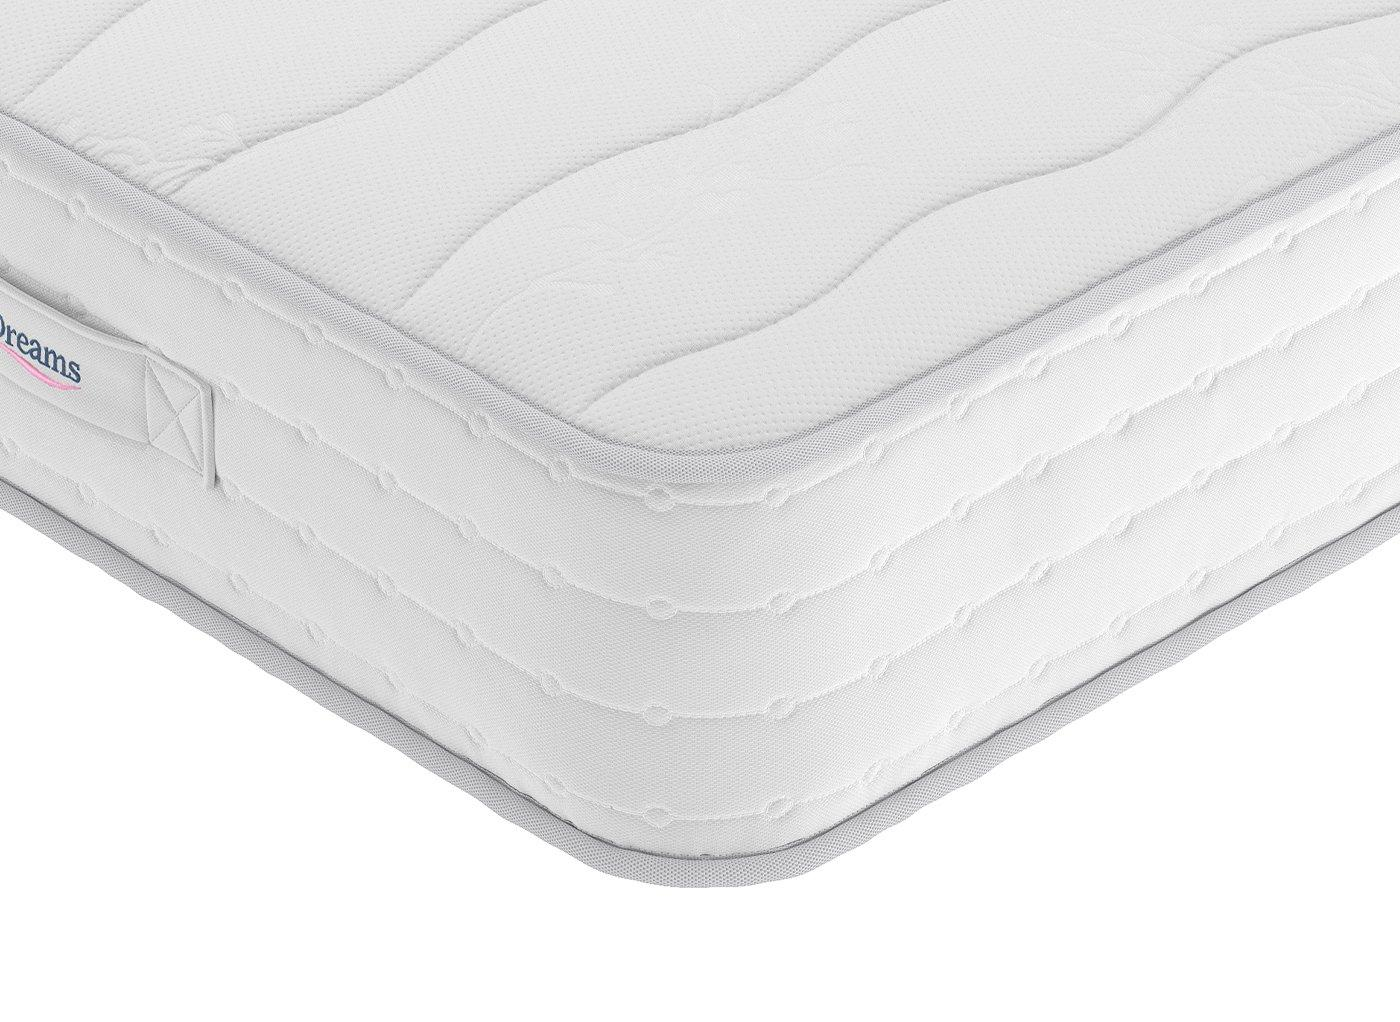 Single Pocket Sprung Memory Foam Mattress Medium Memory Foam Mattresses Mattress Chooser